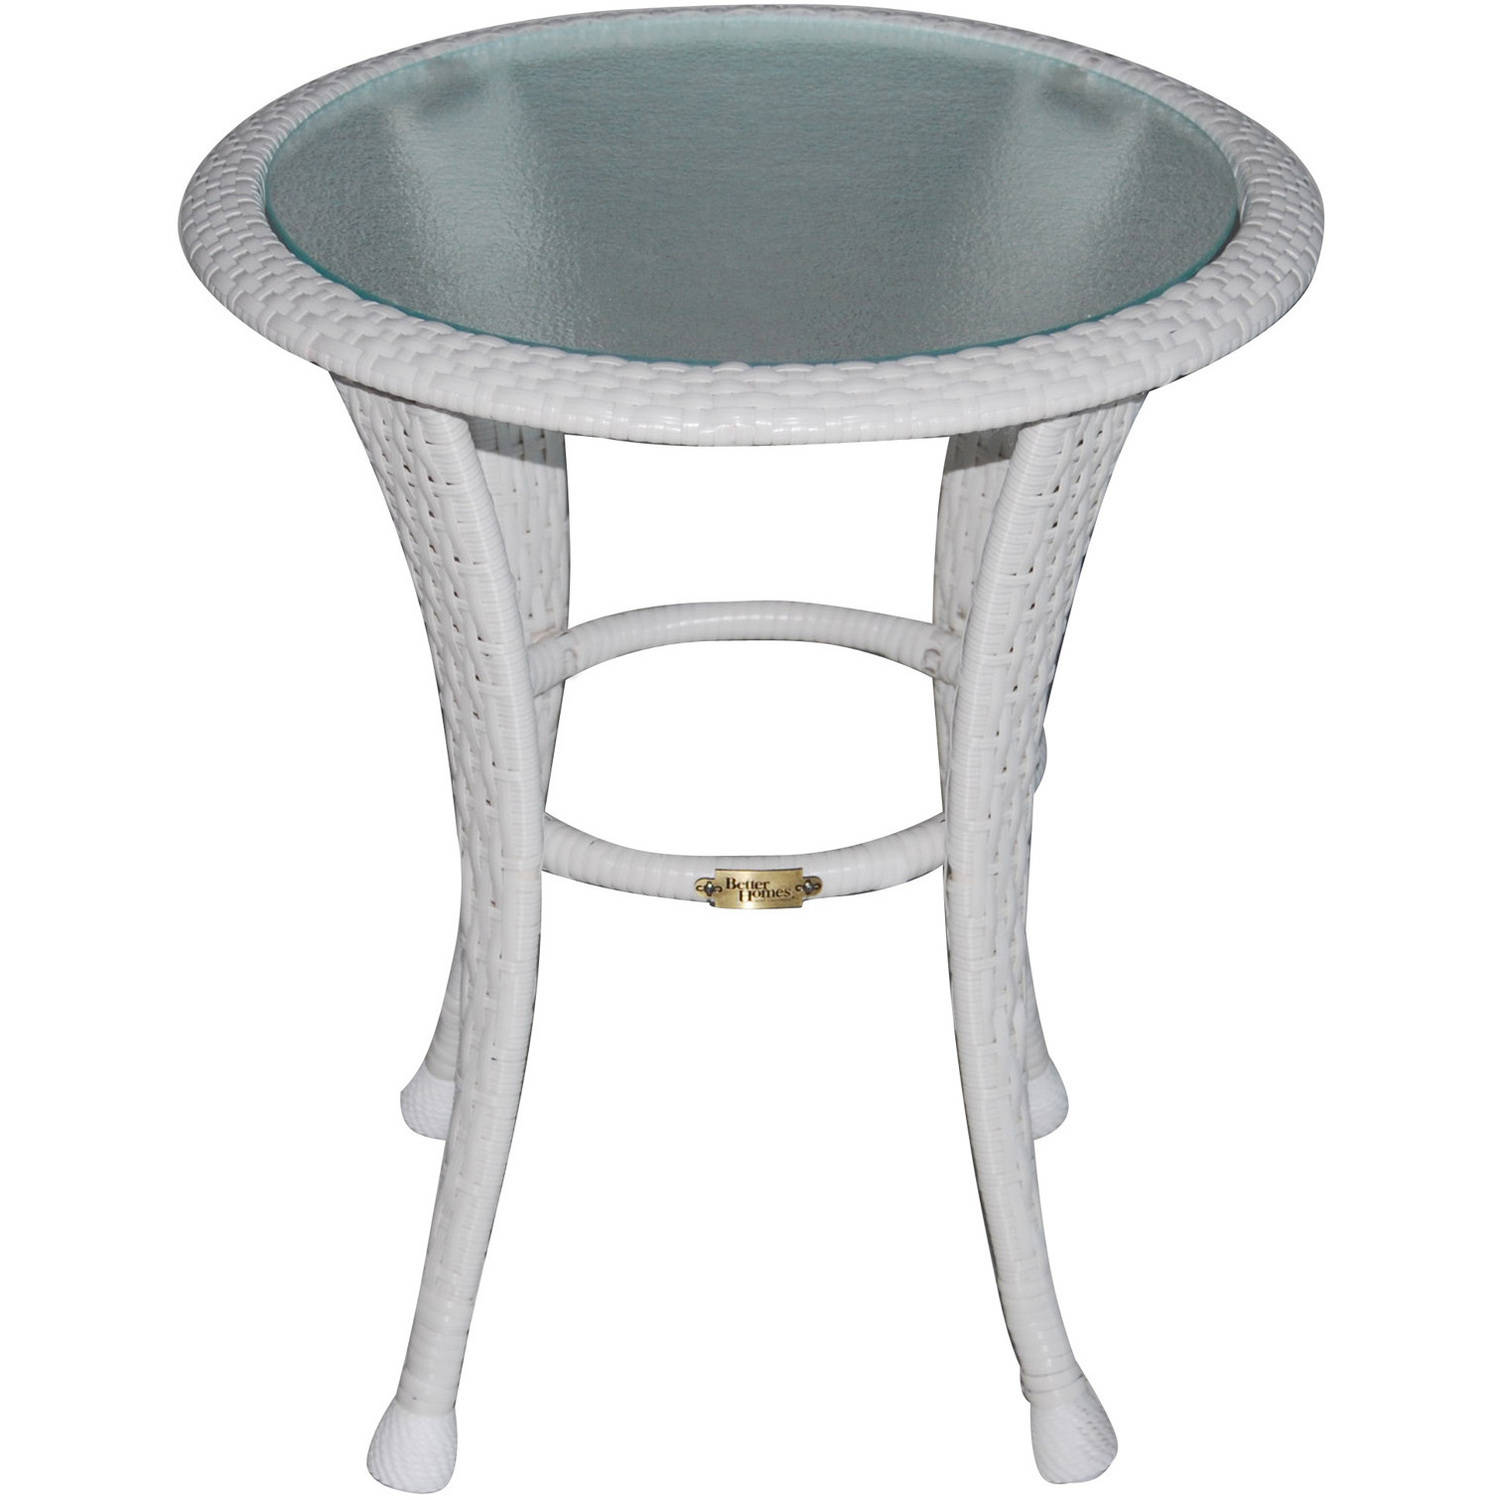 better homes and gardens azalea ridge round outdoor side table patio accent wooden storage crates ikea drum style west elm wood coffee elegant placemats napkins triangle shaped